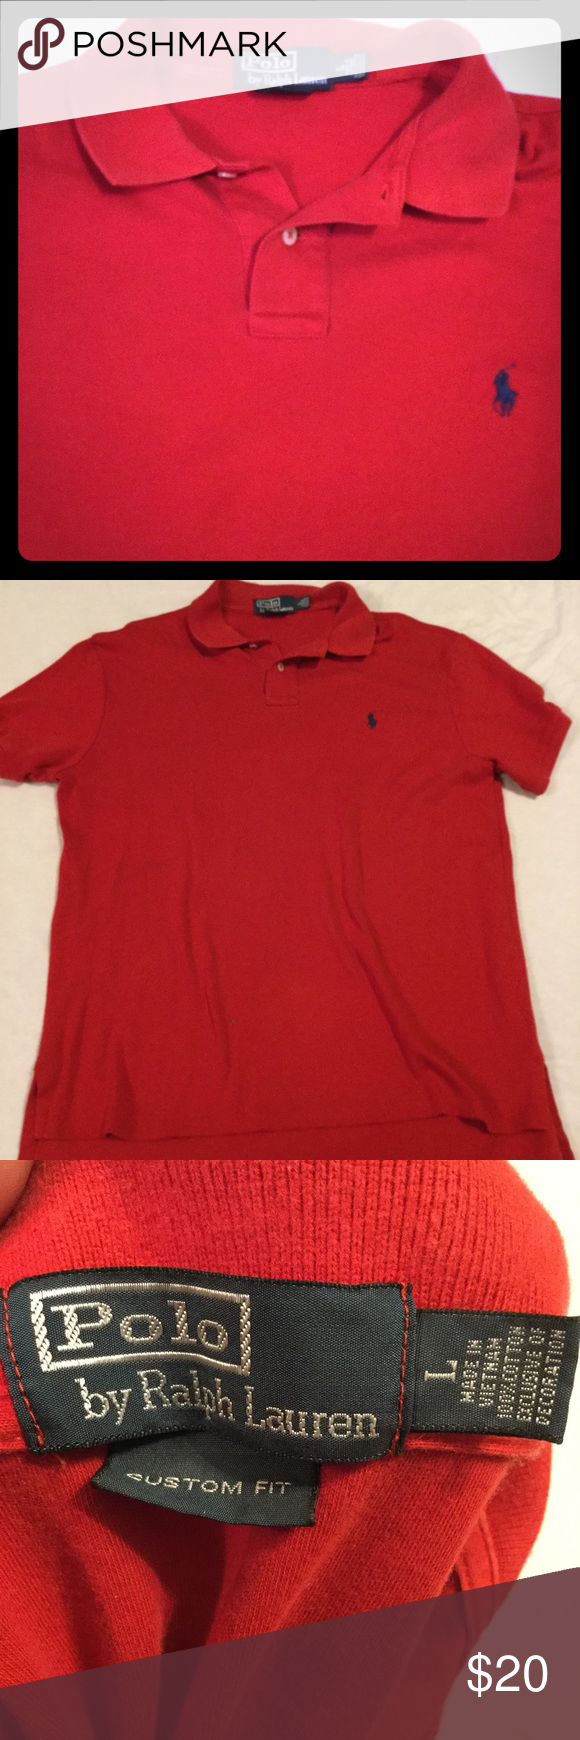 Selling this Polo Ralph Lauren custom fit red men's shirt large on Poshmark! My username is: pennypicking. #shopmycloset #poshmark #fashion #shopping #style #forsale #Polo by Ralph Lauren #Other